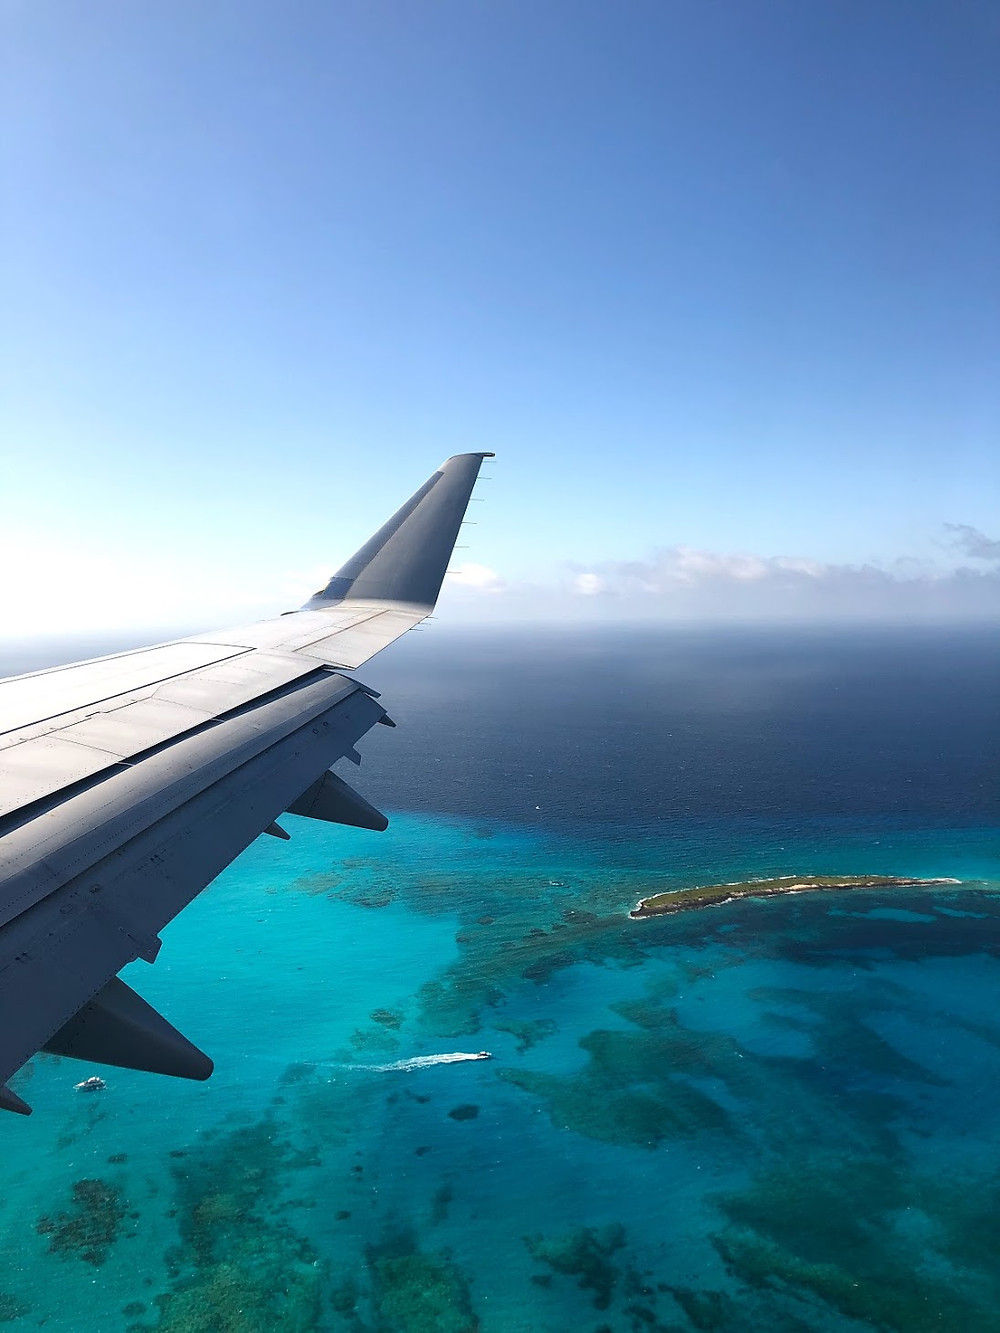 partial wing of airplane flying over turquoise ocean